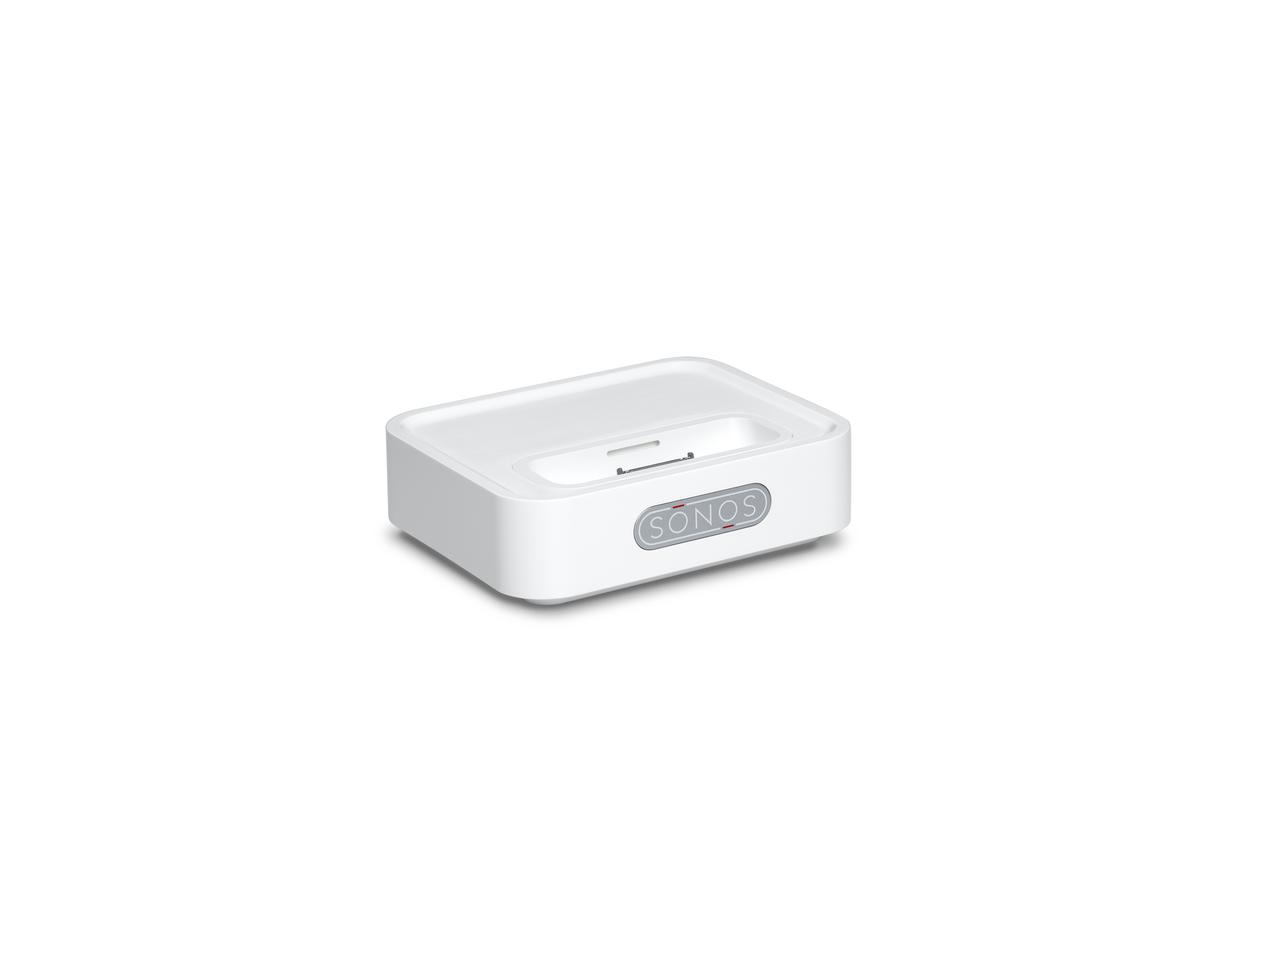 The new wireless dock allows iPod and iPhone users to send music from the iTunes library to any ZonePlayer in the house